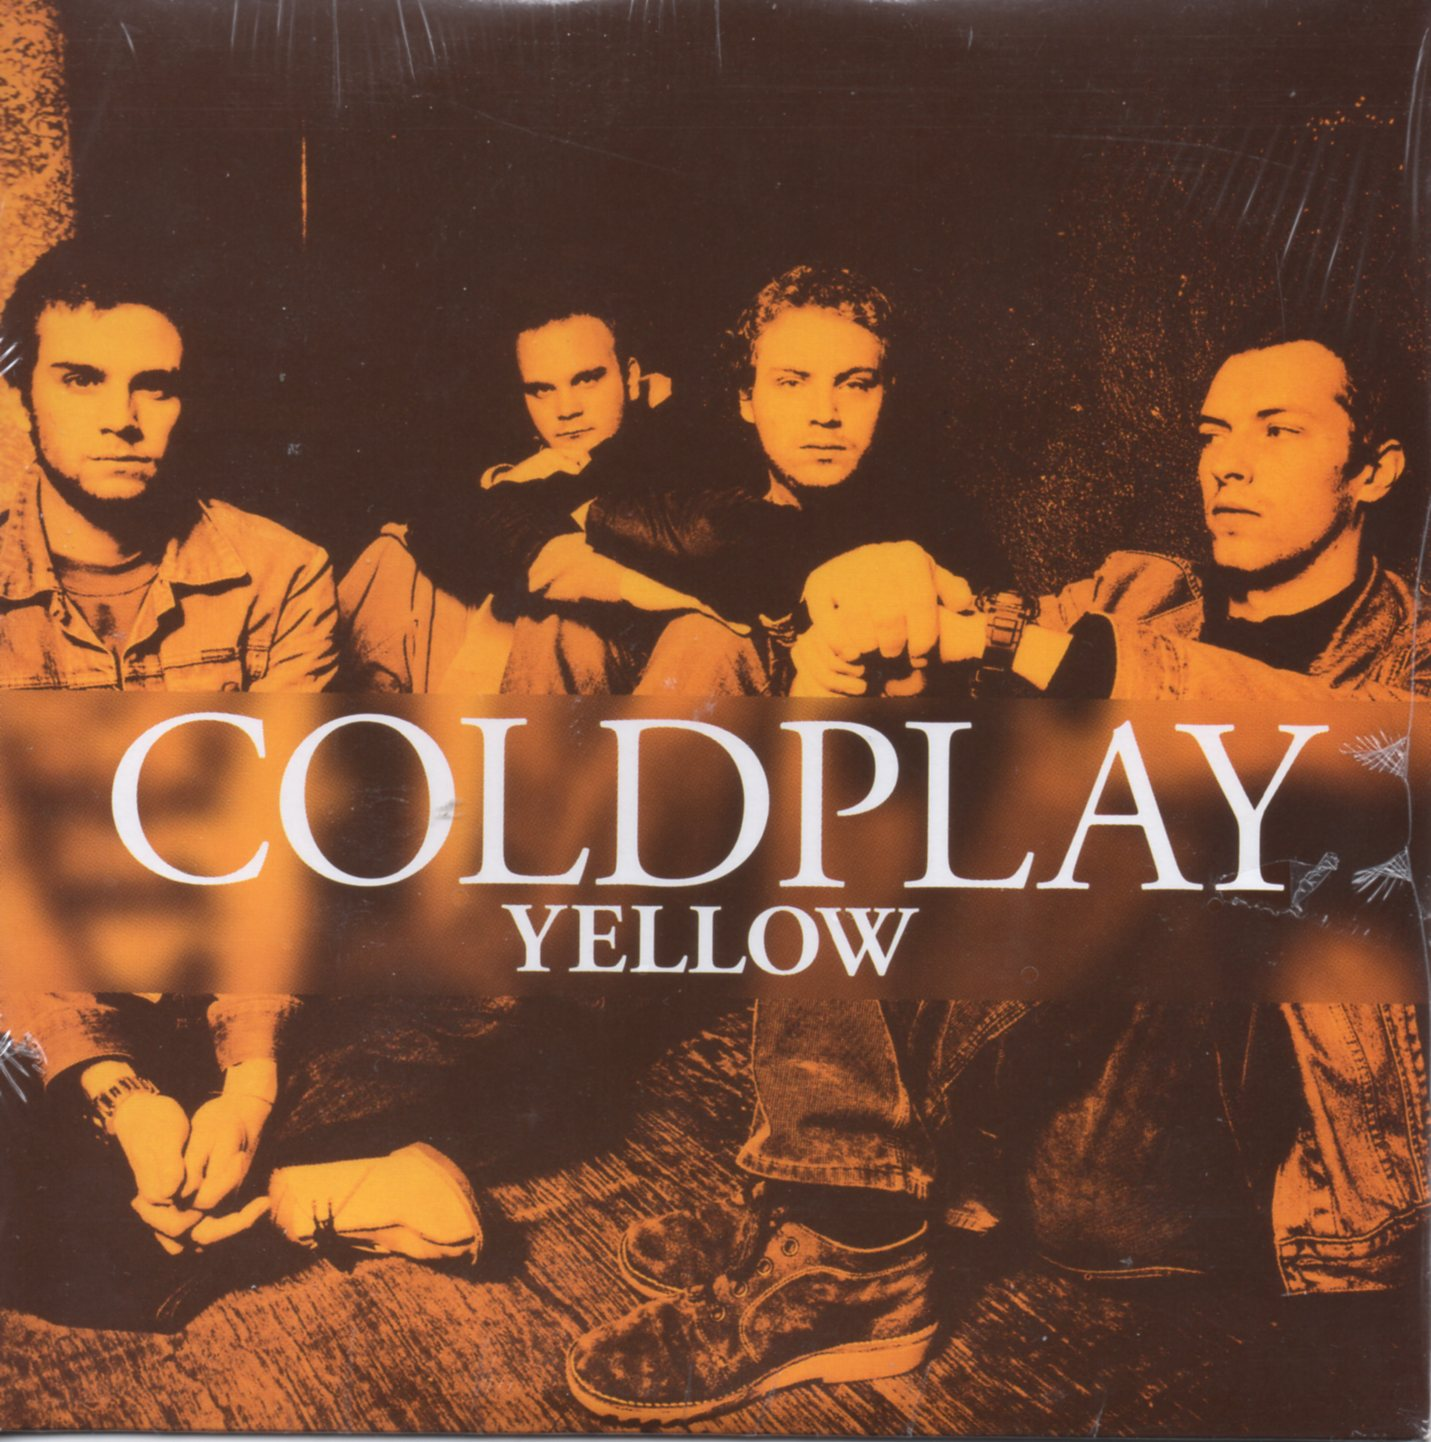 COLDPLAY - Yellow Card Sleeve 2-track